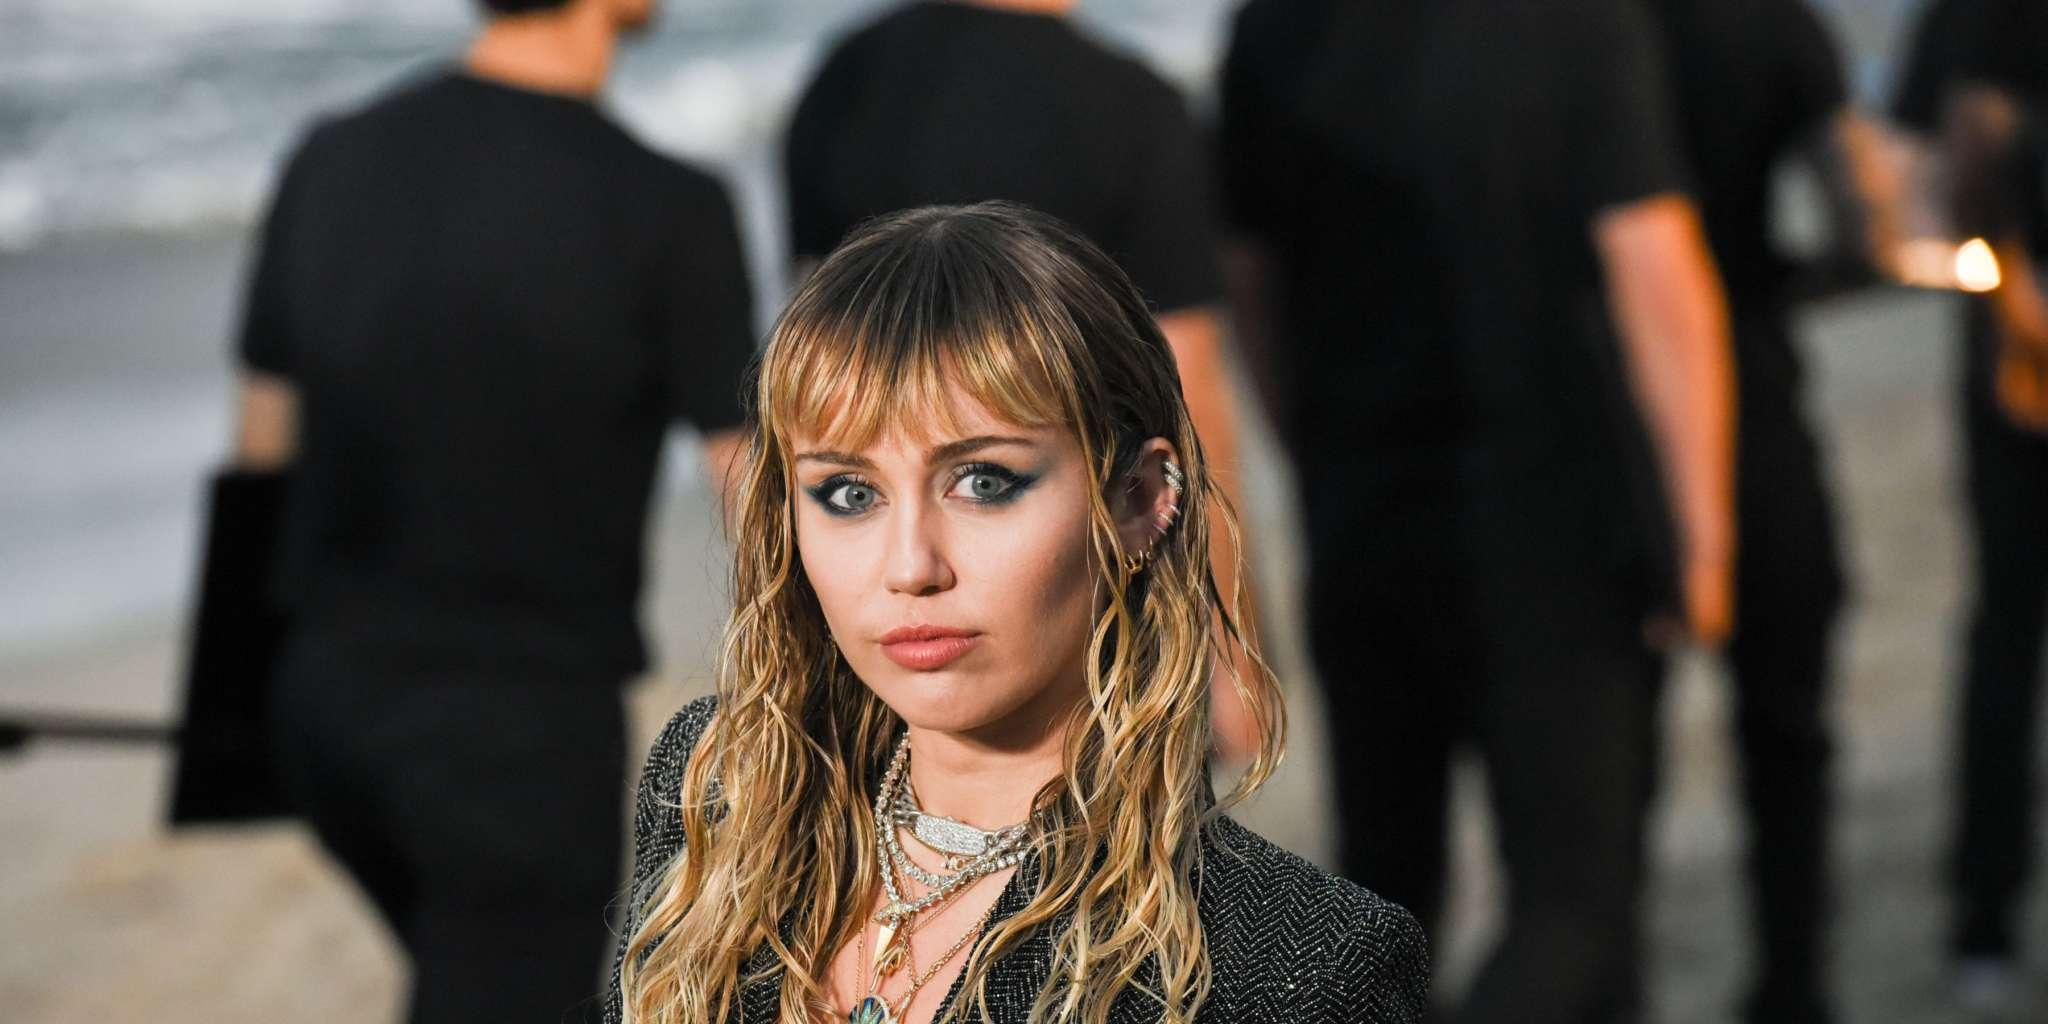 Miley Cyrus Dealing With All Her Liam Hemsworth Divorce Emotions By Writing New Music, Source Says